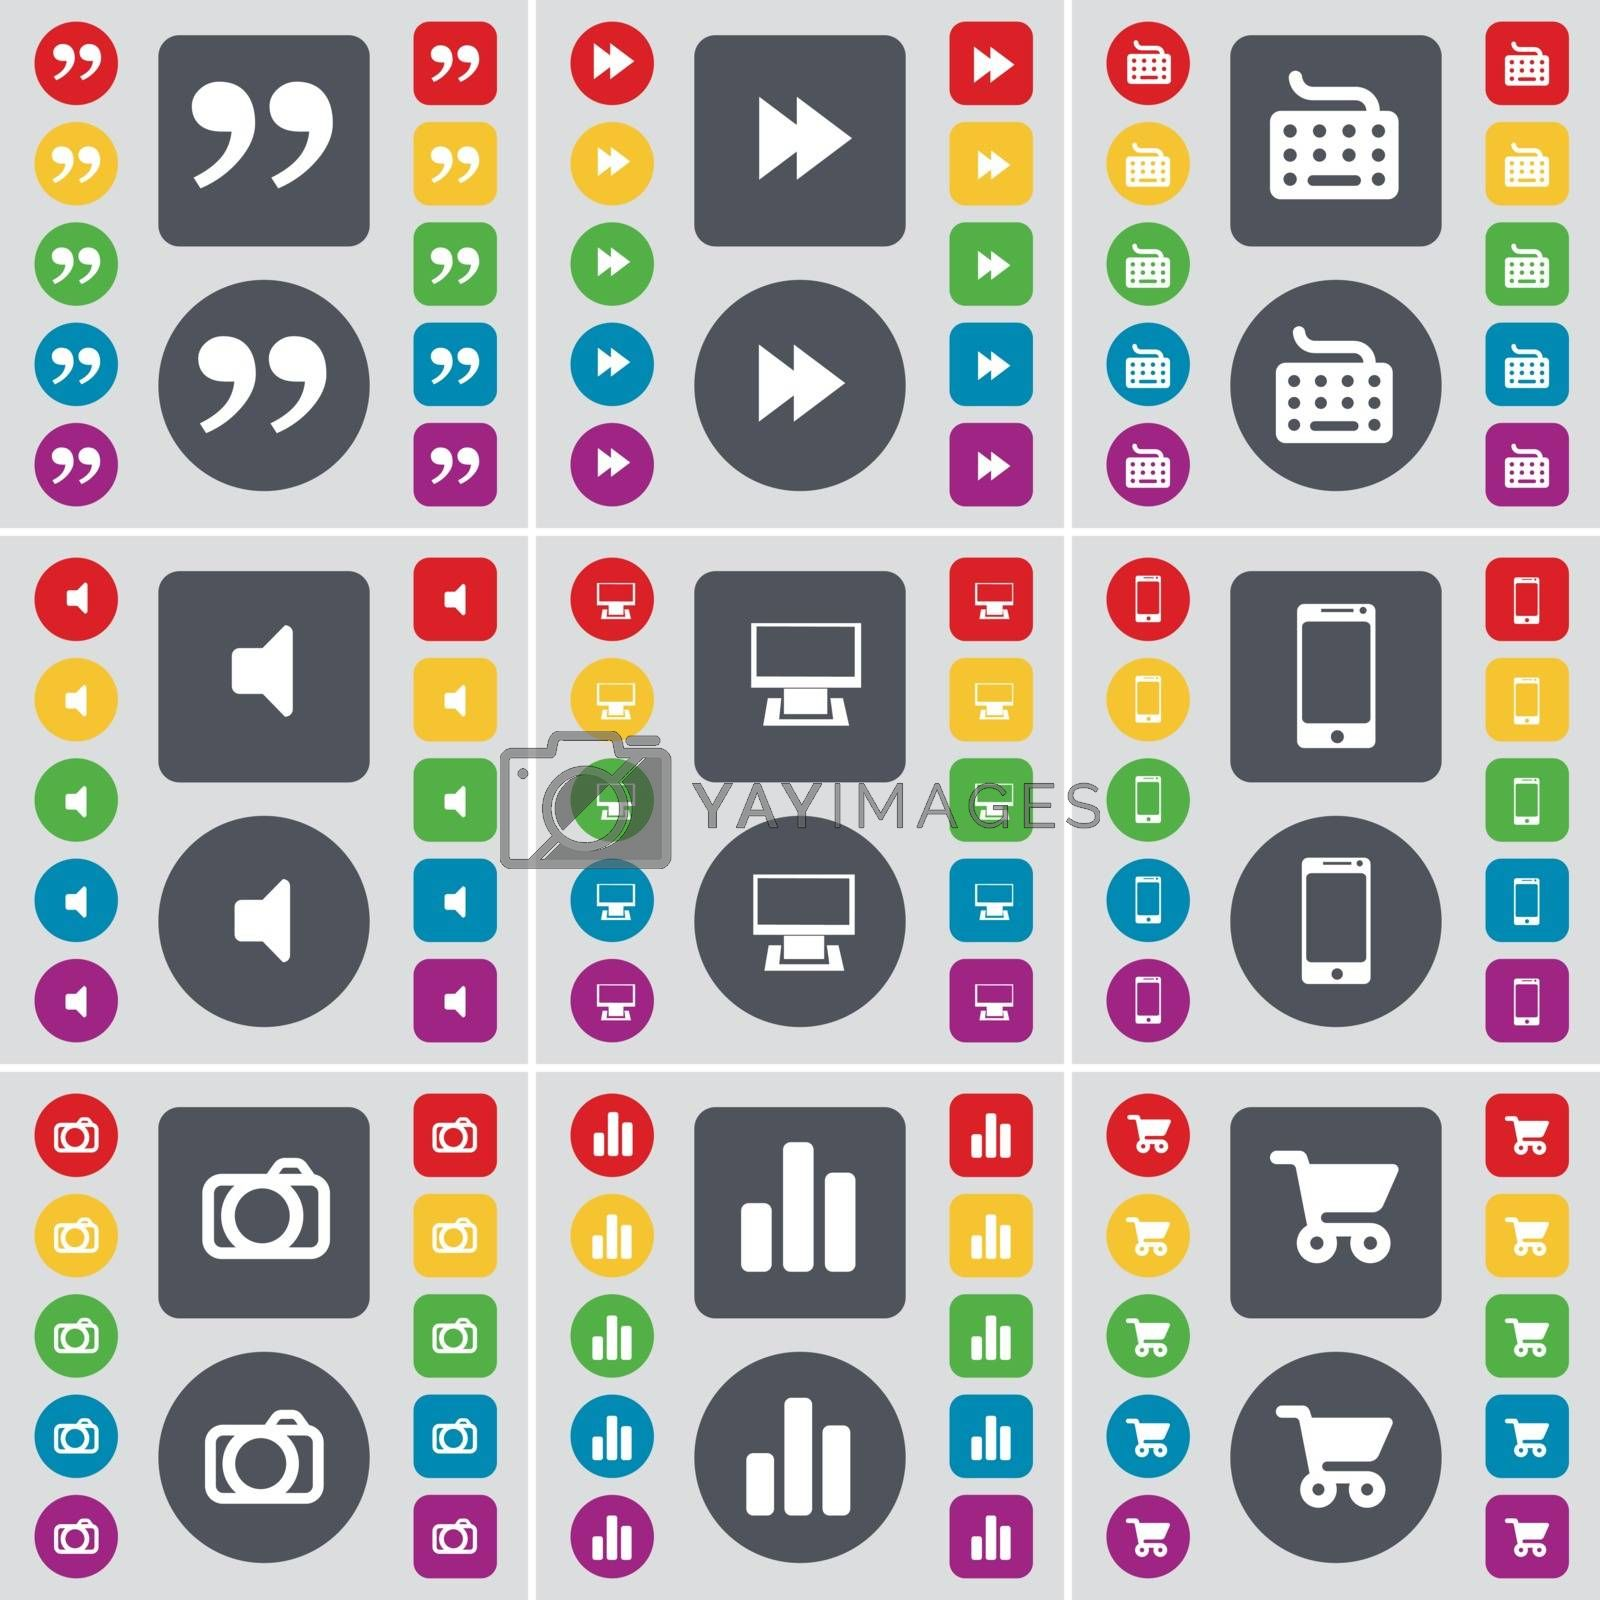 Royalty free image of Quotation mark, Rewind, Keyboard, Sound, Monitor, Smartphone, Camera, Diagram, Shopping cart icon symbol. A large set of flat, colored buttons for your design. Vector by serhii_lohvyniuk